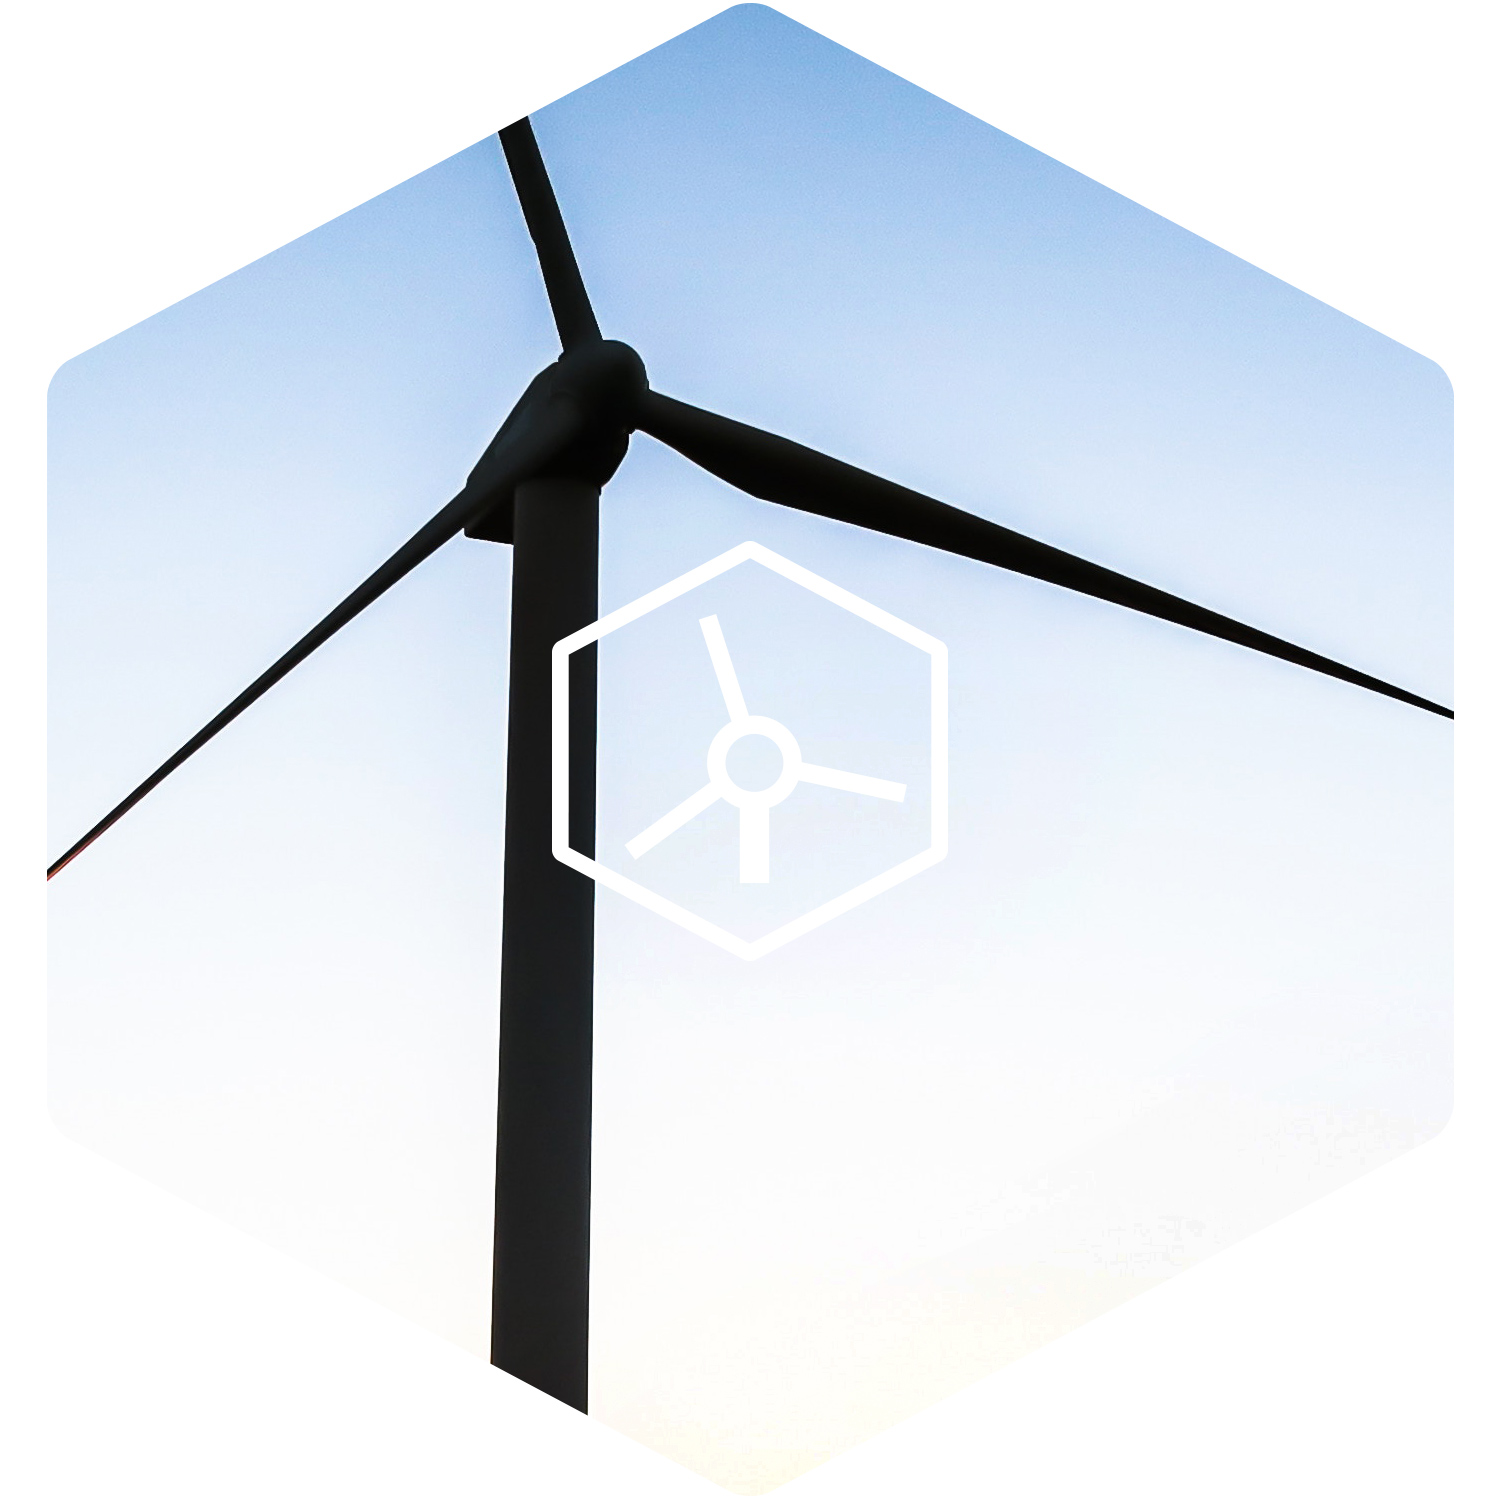 HexagonEnergy_WindEnergy2.jpg